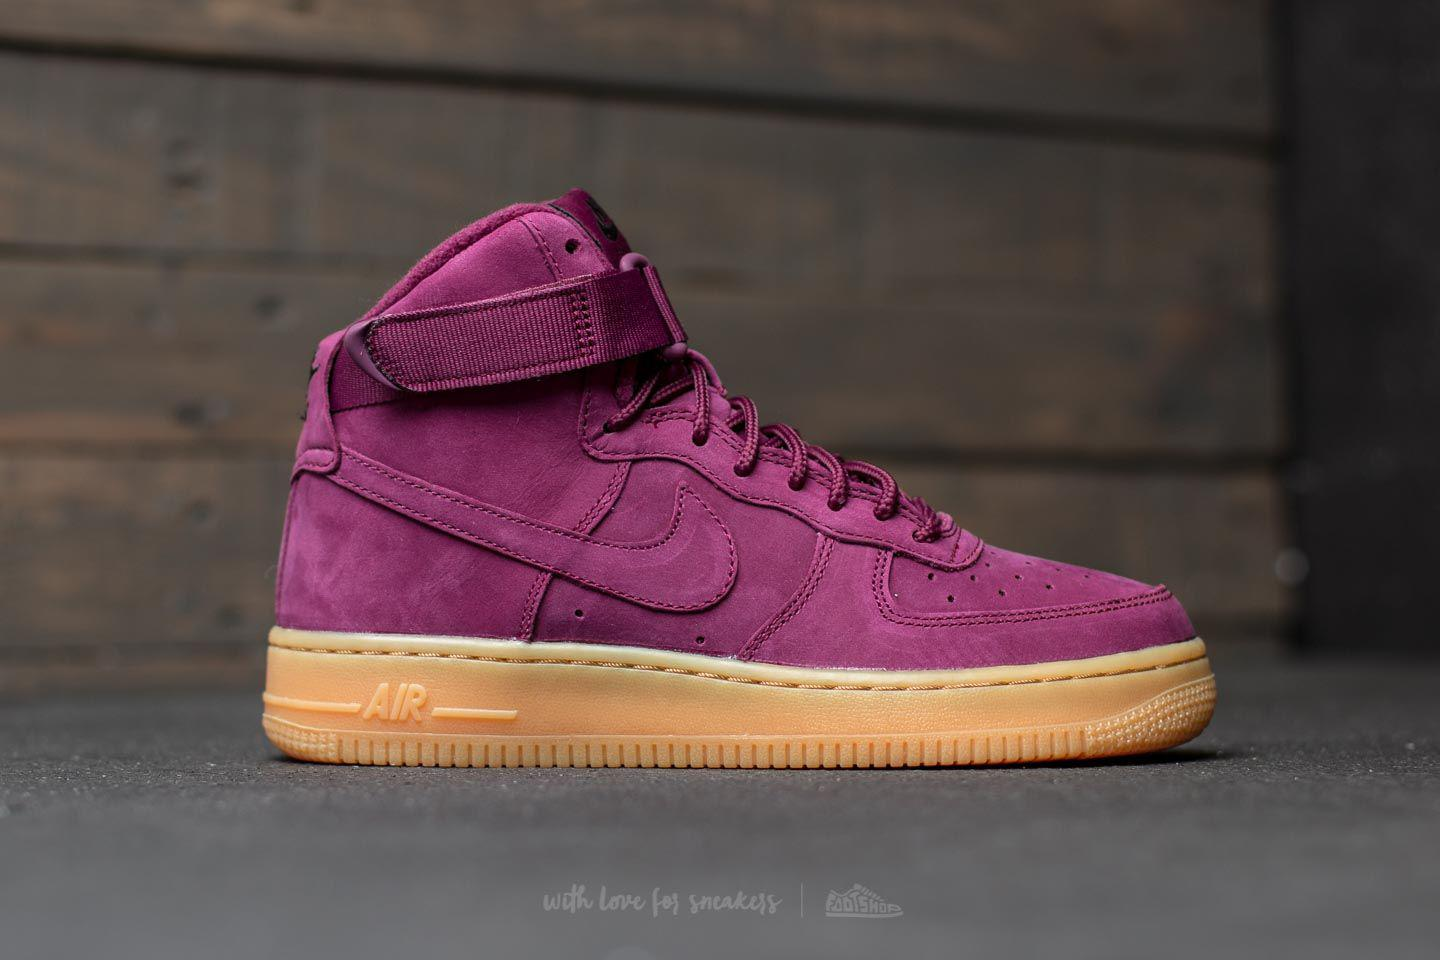 outlet store 67aec 5a987 spain nike air force 1 high purple white 93147 58322  australia gallery.  previously sold at footshop womens nike air force 60467 ed2fb